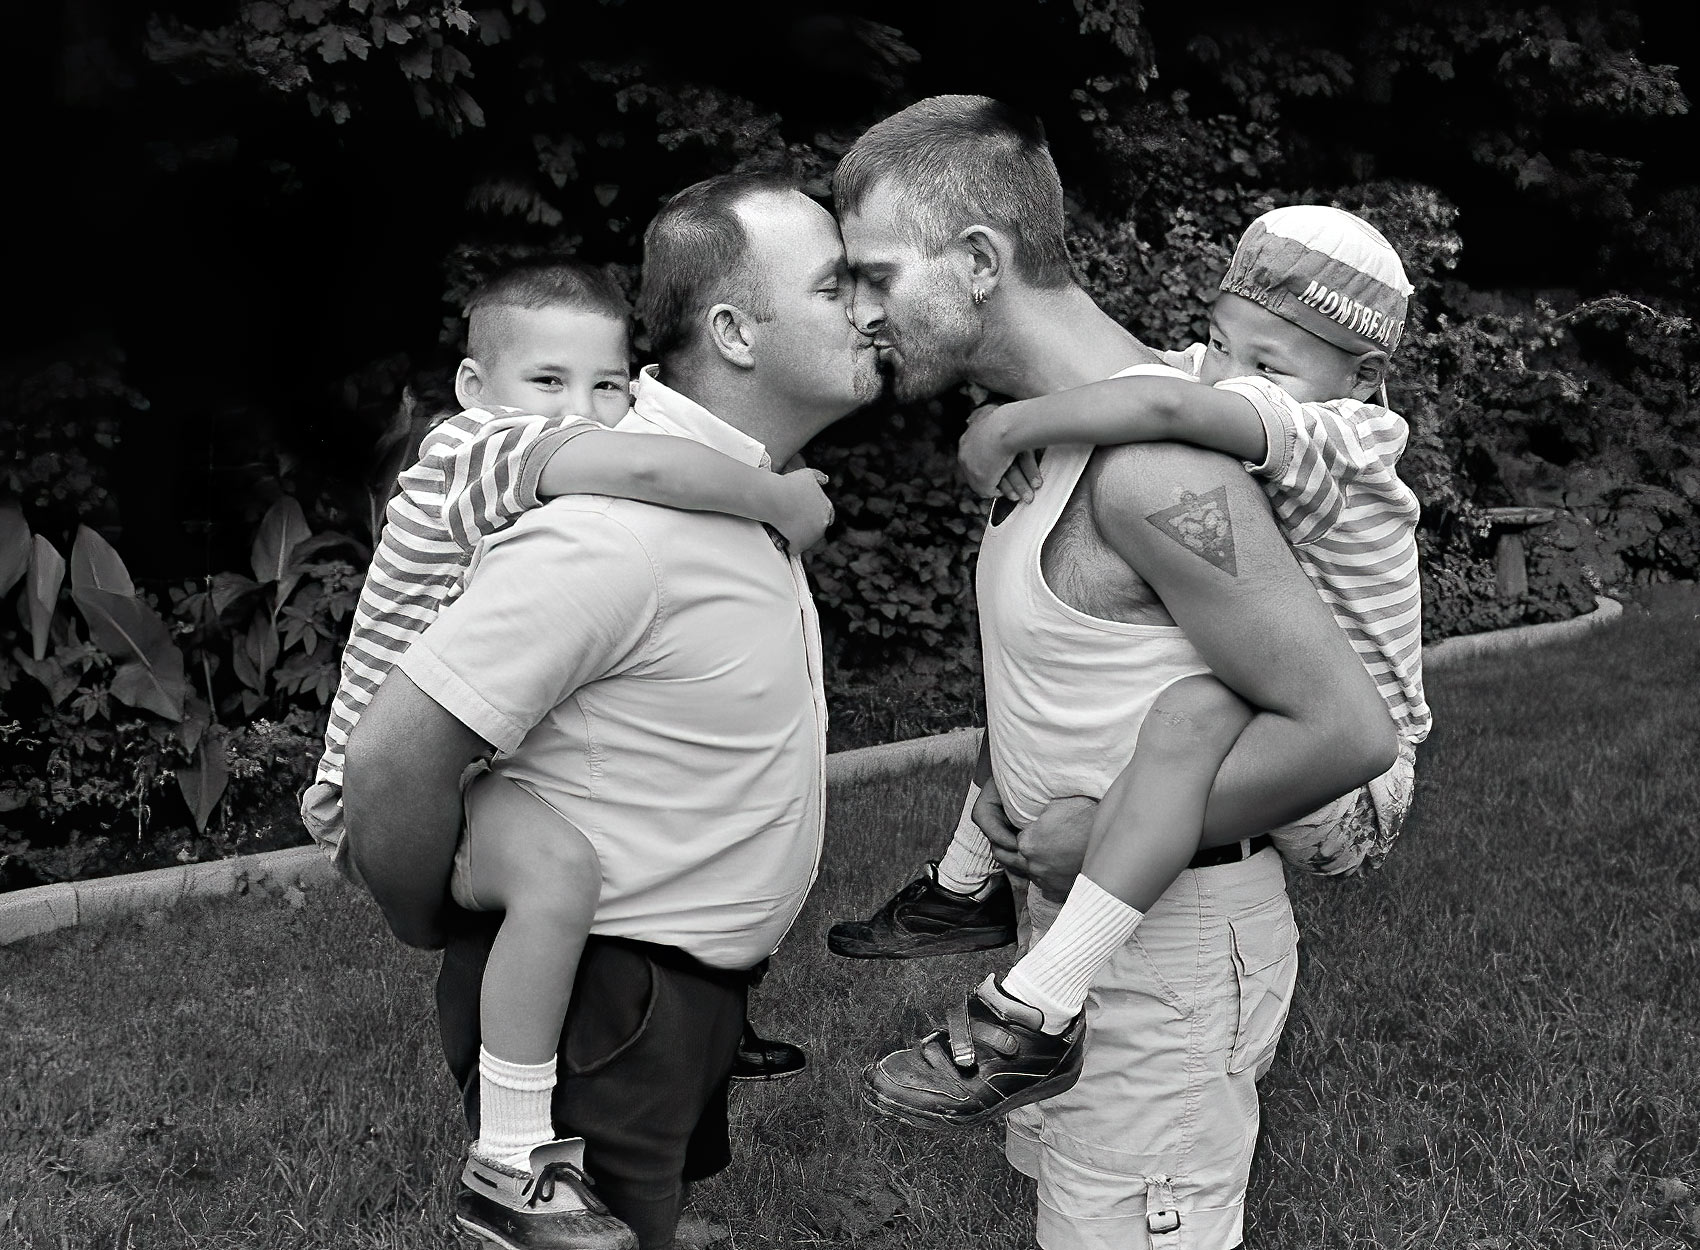 a-gay-male-couple-kiss-in-their-back-garden-while-piggy-backing-both-of-their-adopted-sons